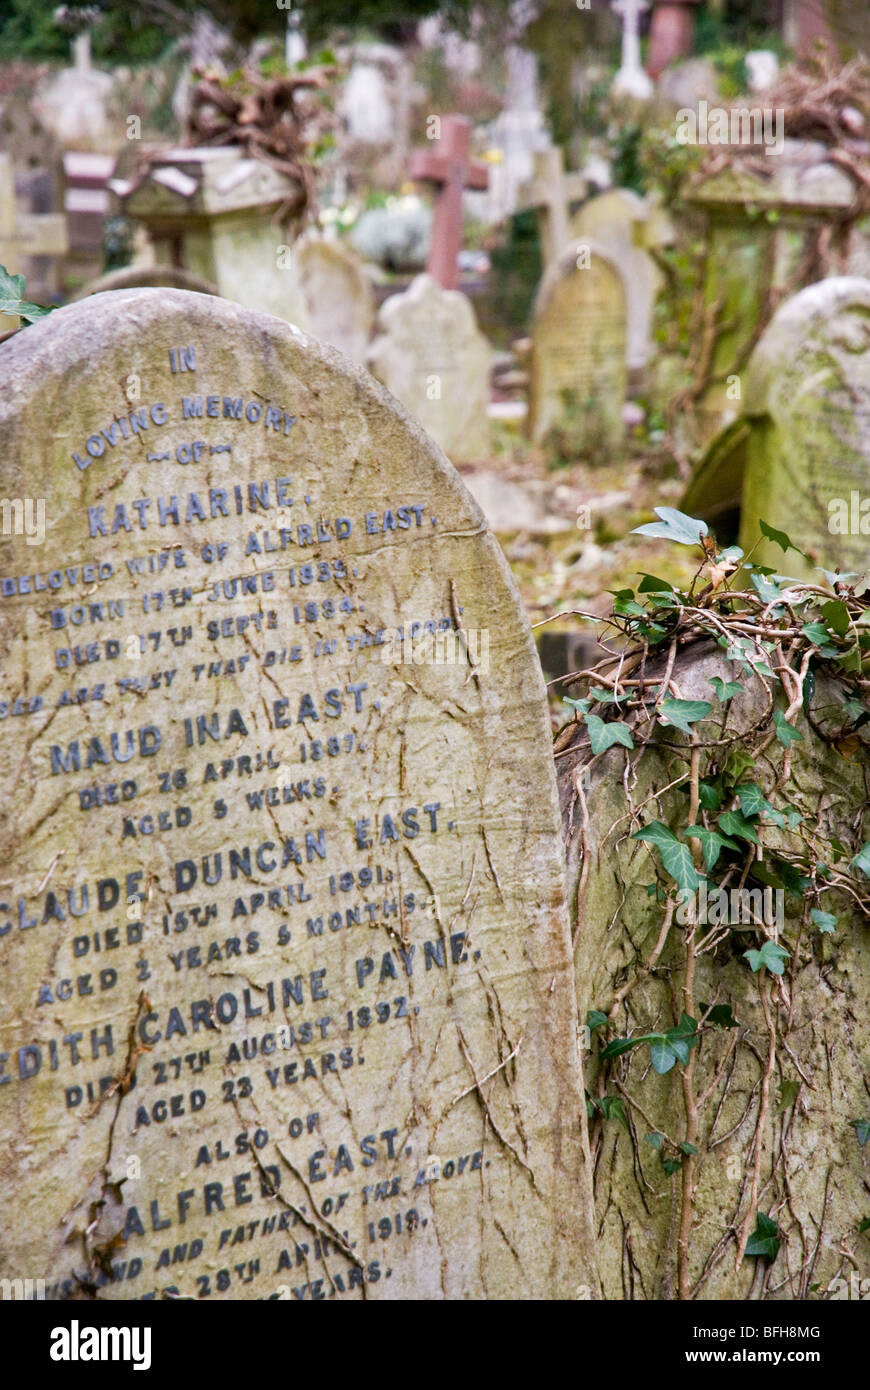 Headstones at Highgate cemetery in London England UK - Stock Image